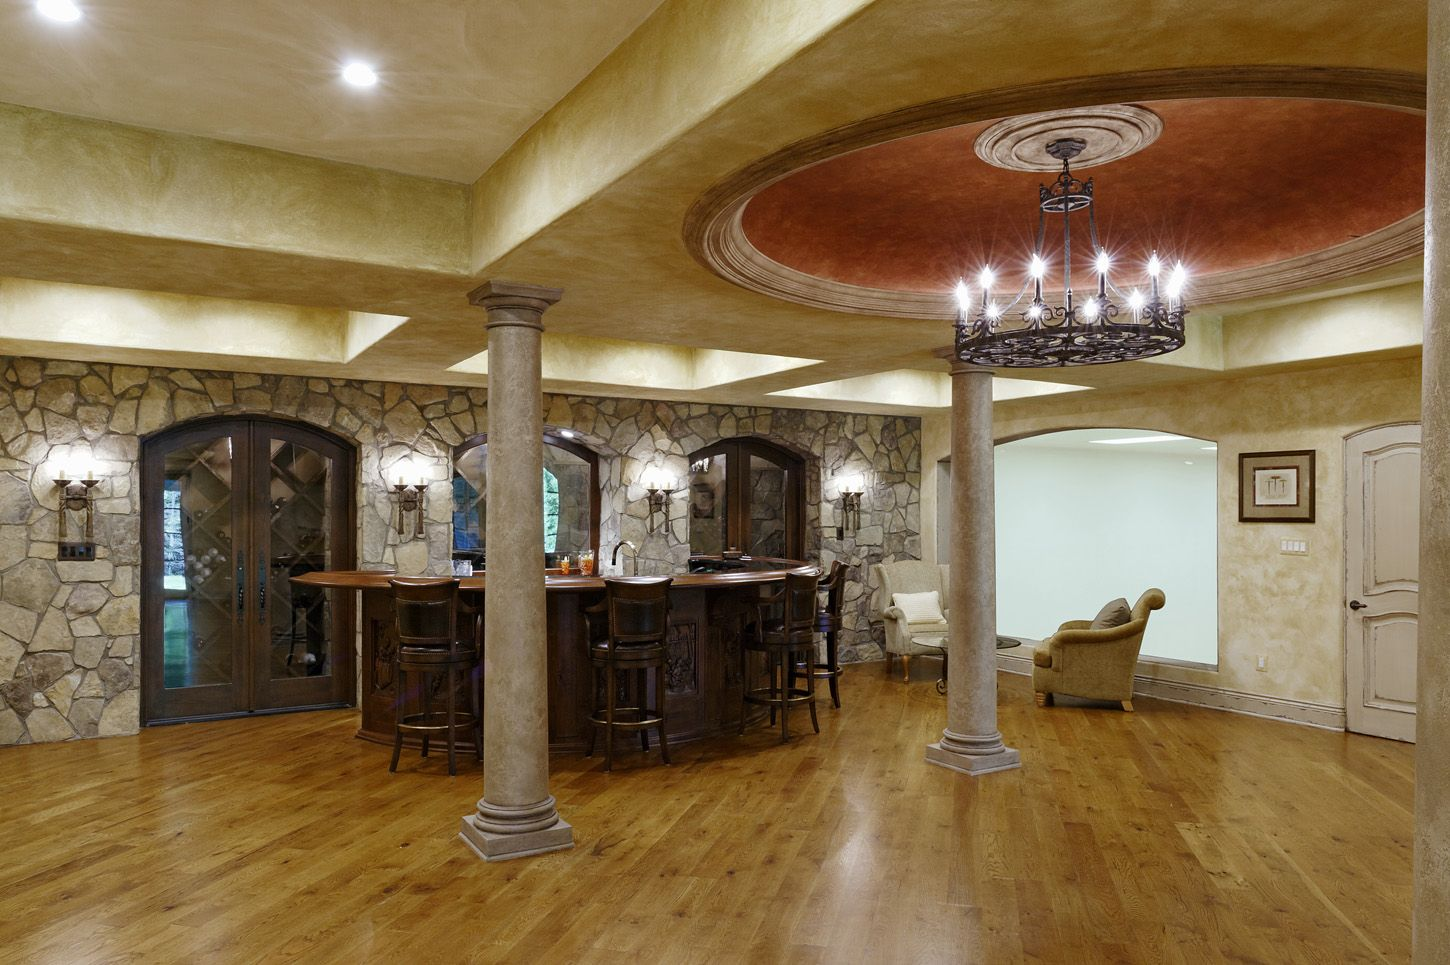 This 12 5 Million Mclean Mansion Has A Ballroom And An Indoor Basketball Court Washingtonian Dc Mansions Indoor Basketball Court Indoor Basketball